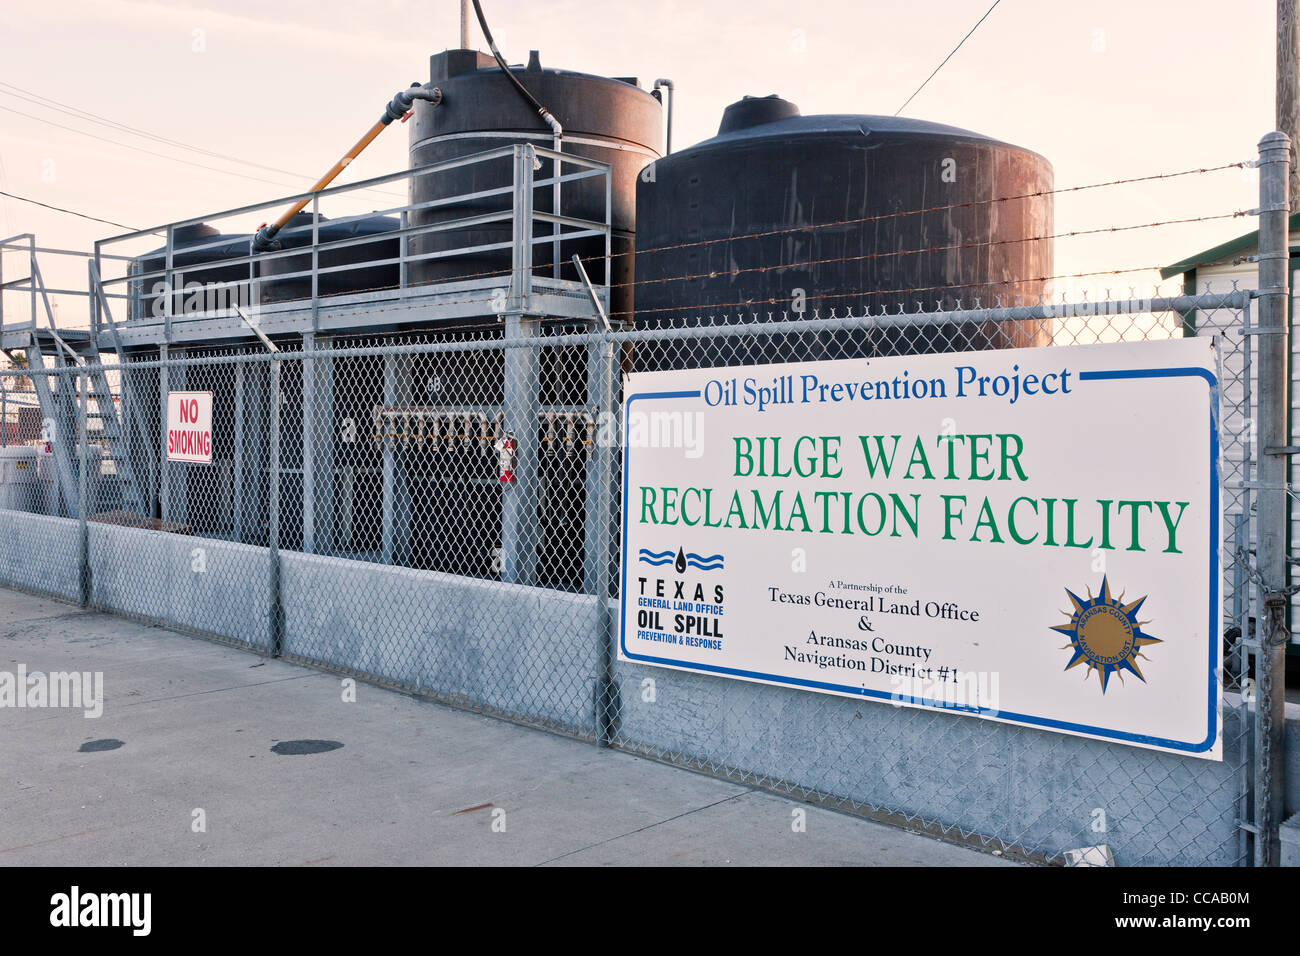 Bilge water reclamation facility 'Oil Spill Prevention Project'. - Stock Image